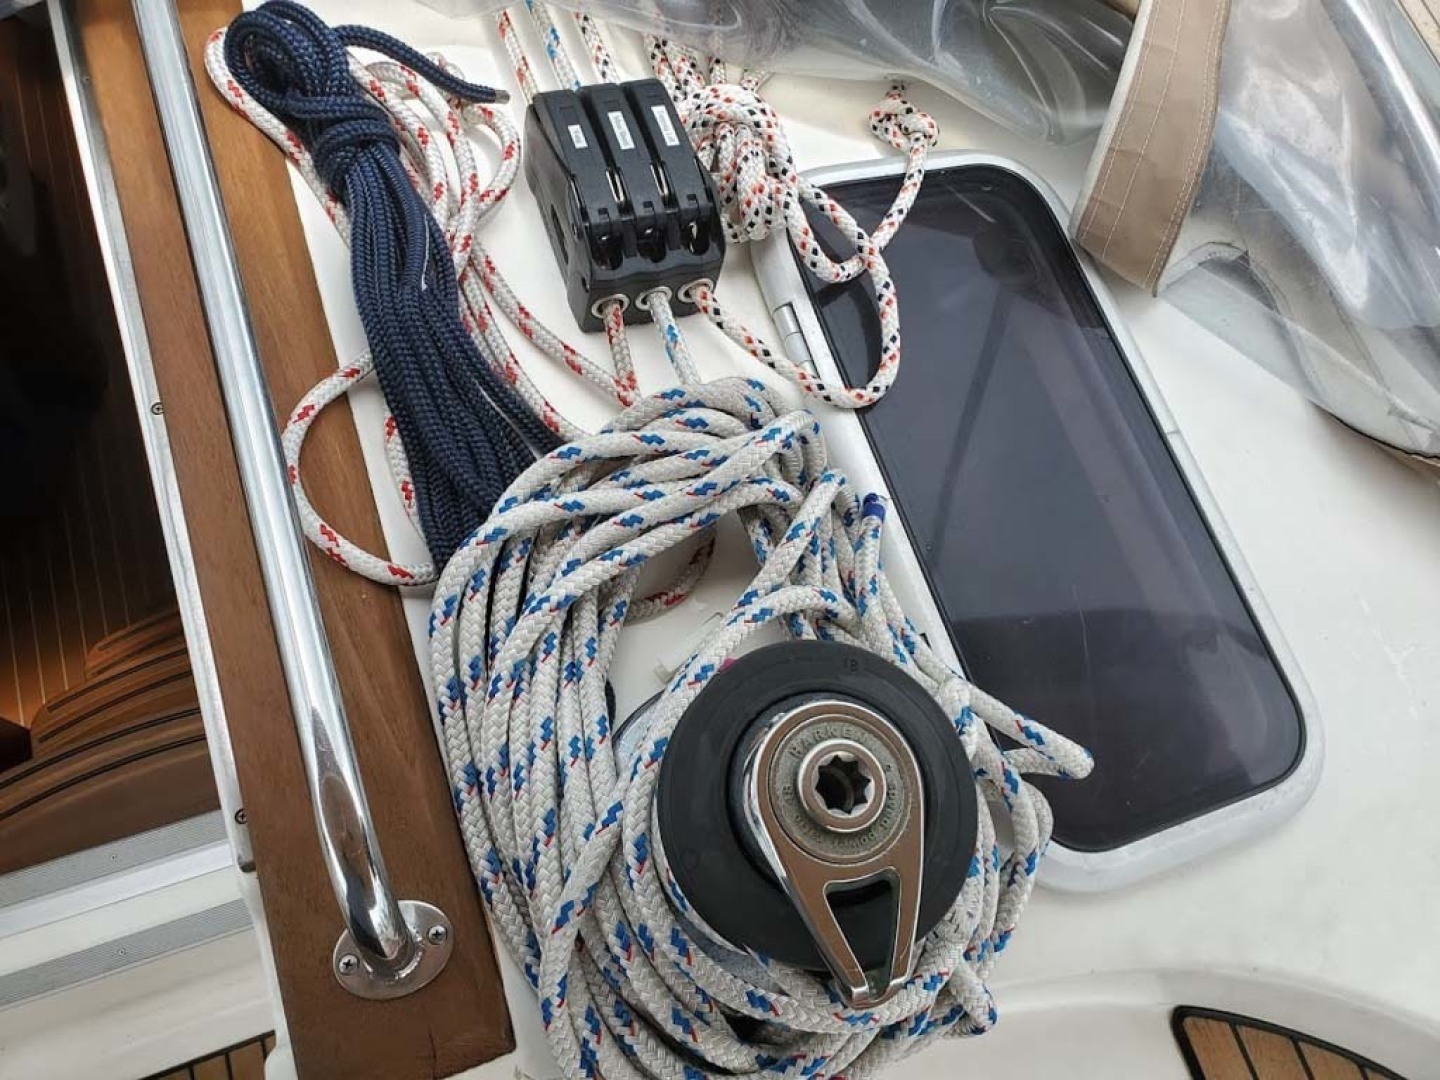 Bavaria-49 2003-BLUE CLOUD LADY Jacksonville-Florida-United States-Labeled Mainsail Control Lines-1412455 | Thumbnail